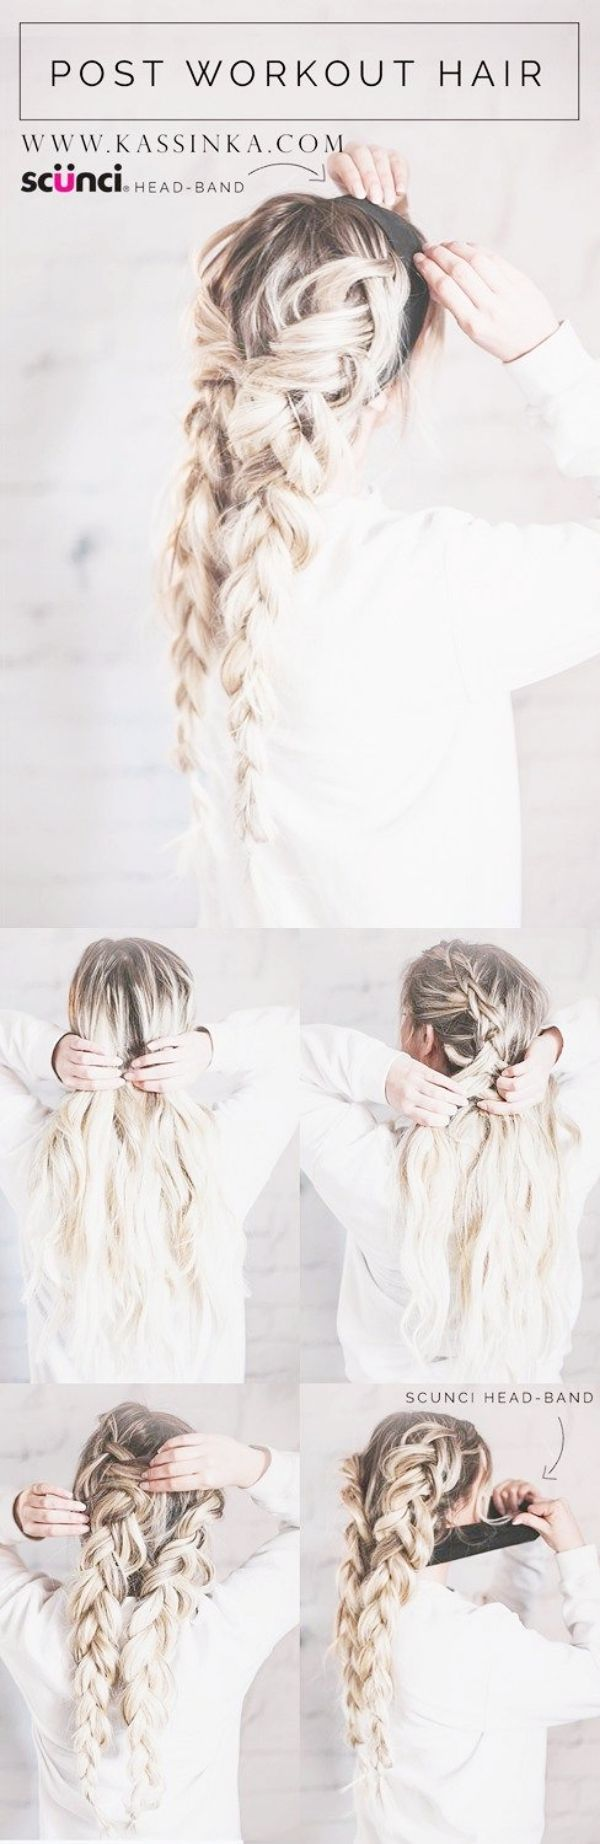 43 Bohemian hairstyle tutorials to set yourself free